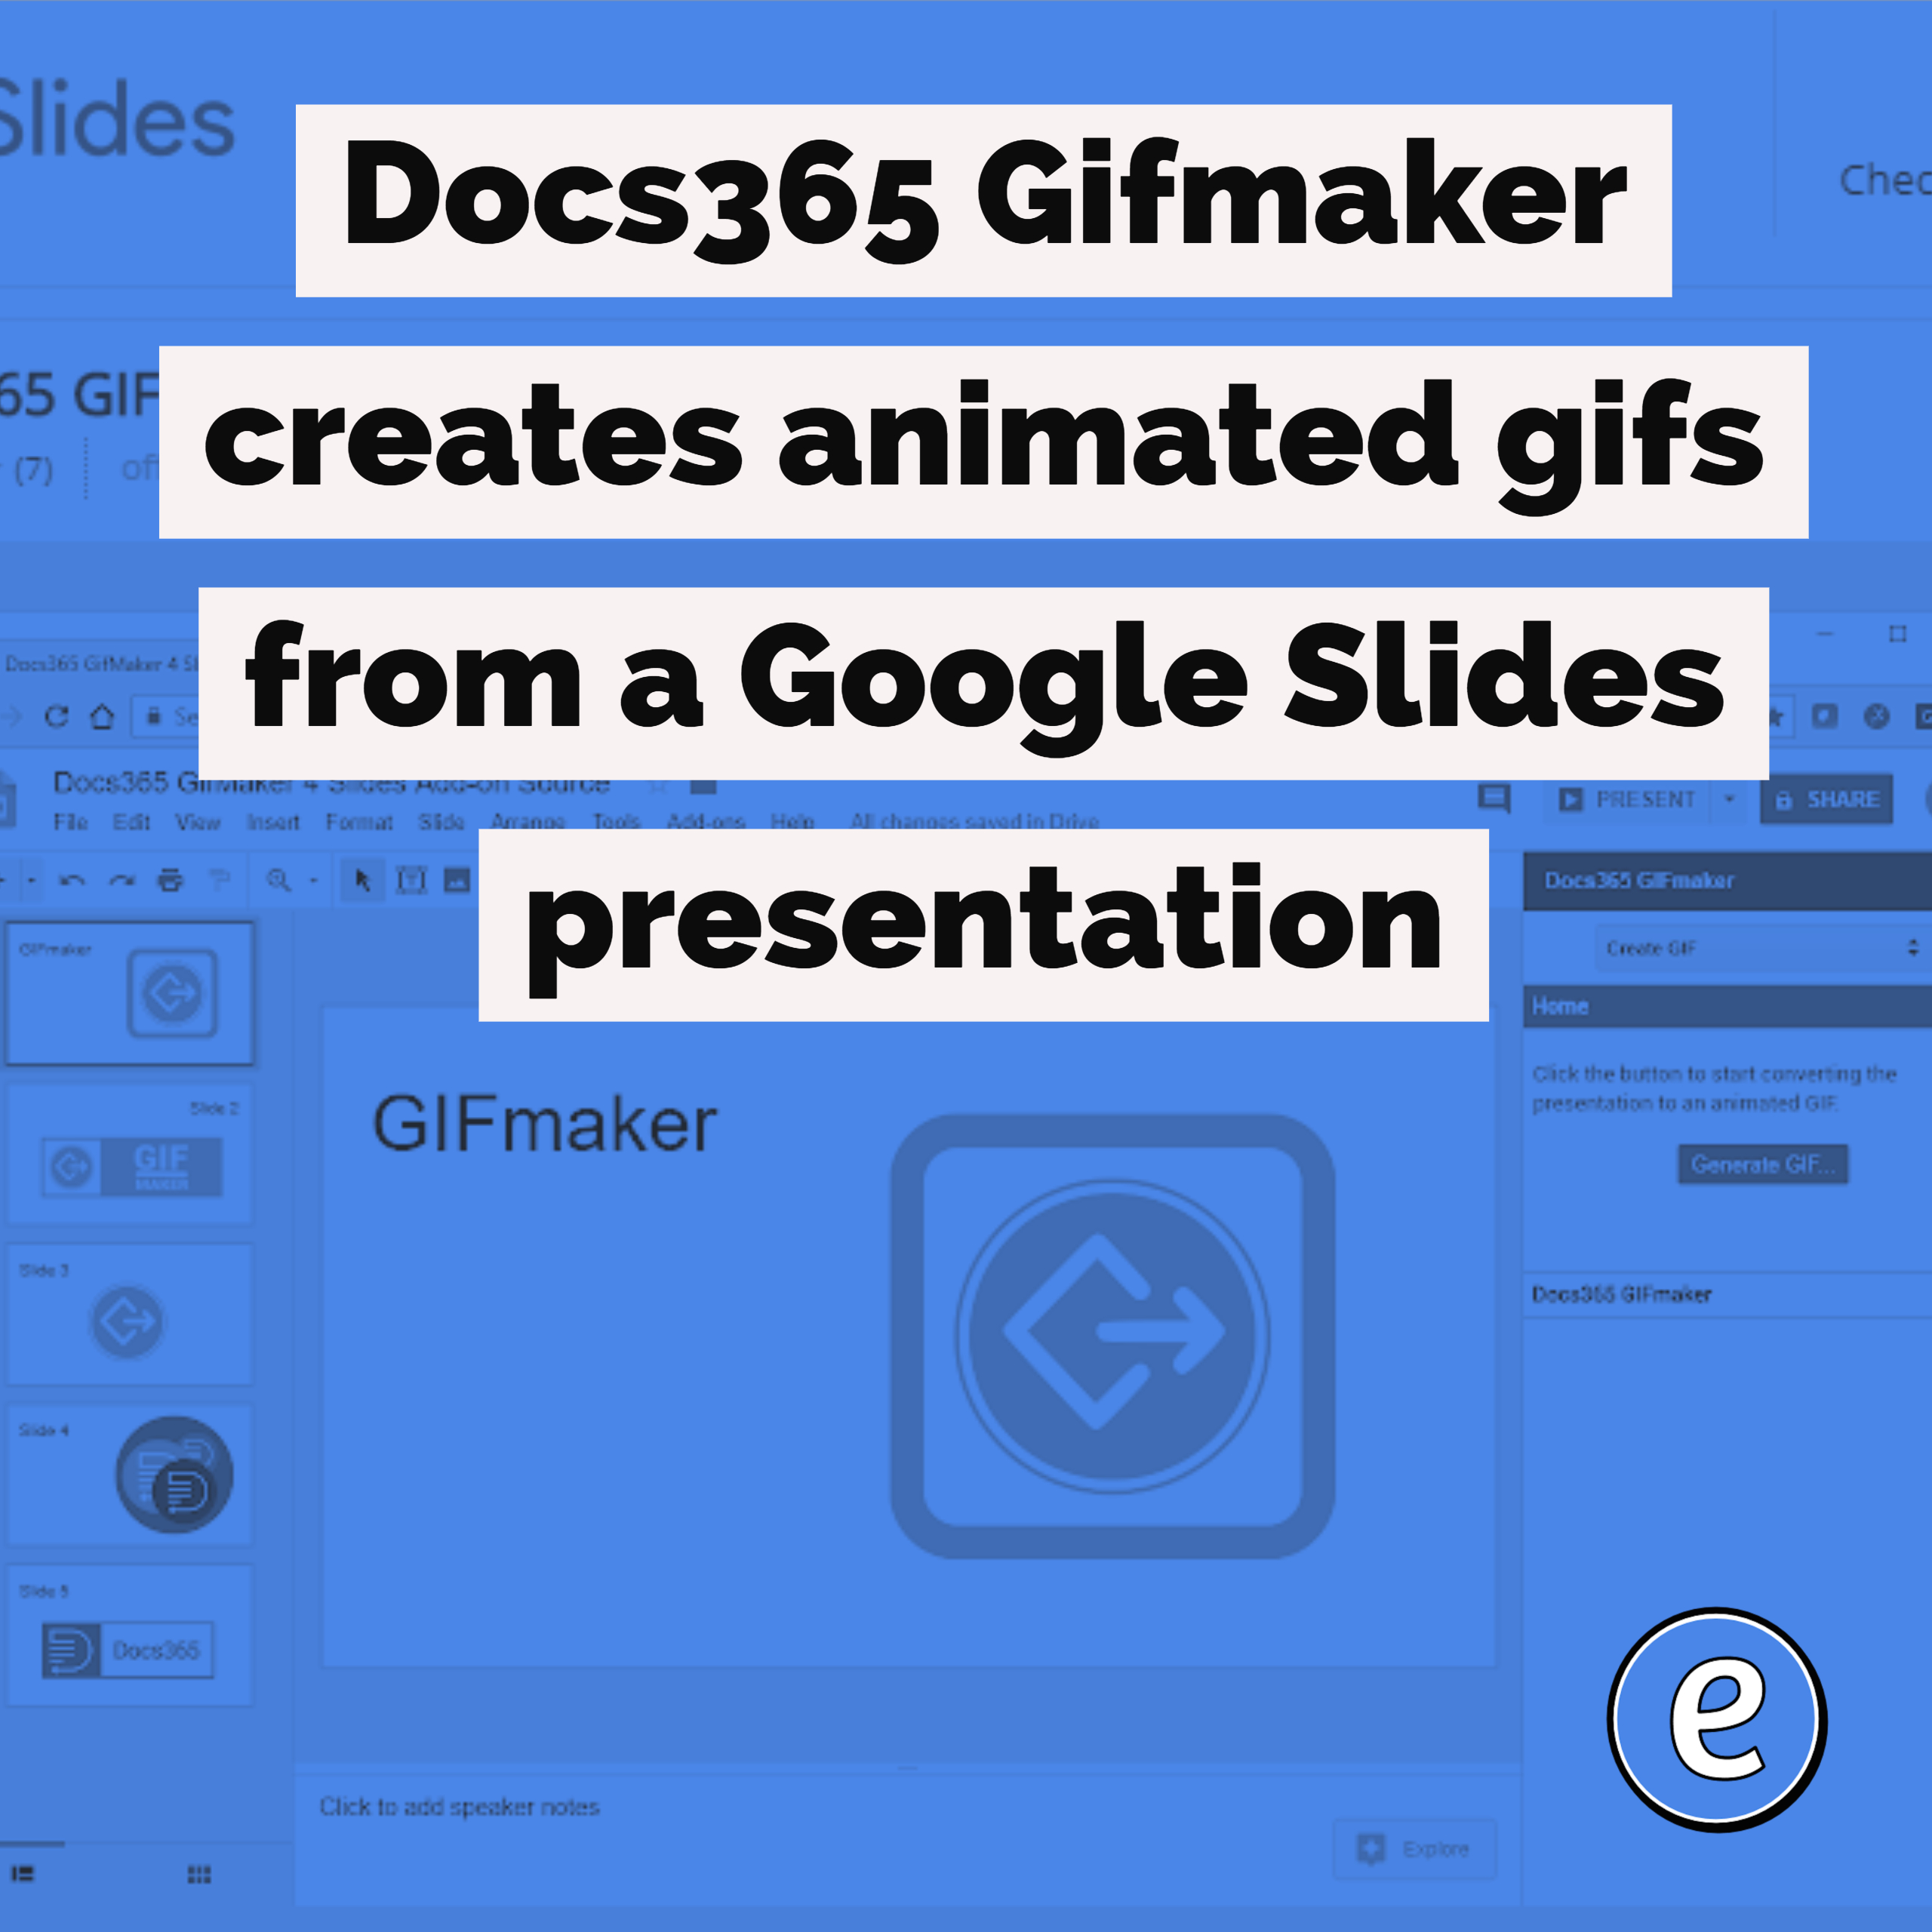 Docs365 Gifmaker creates animated gifs from a Google Slides presentation